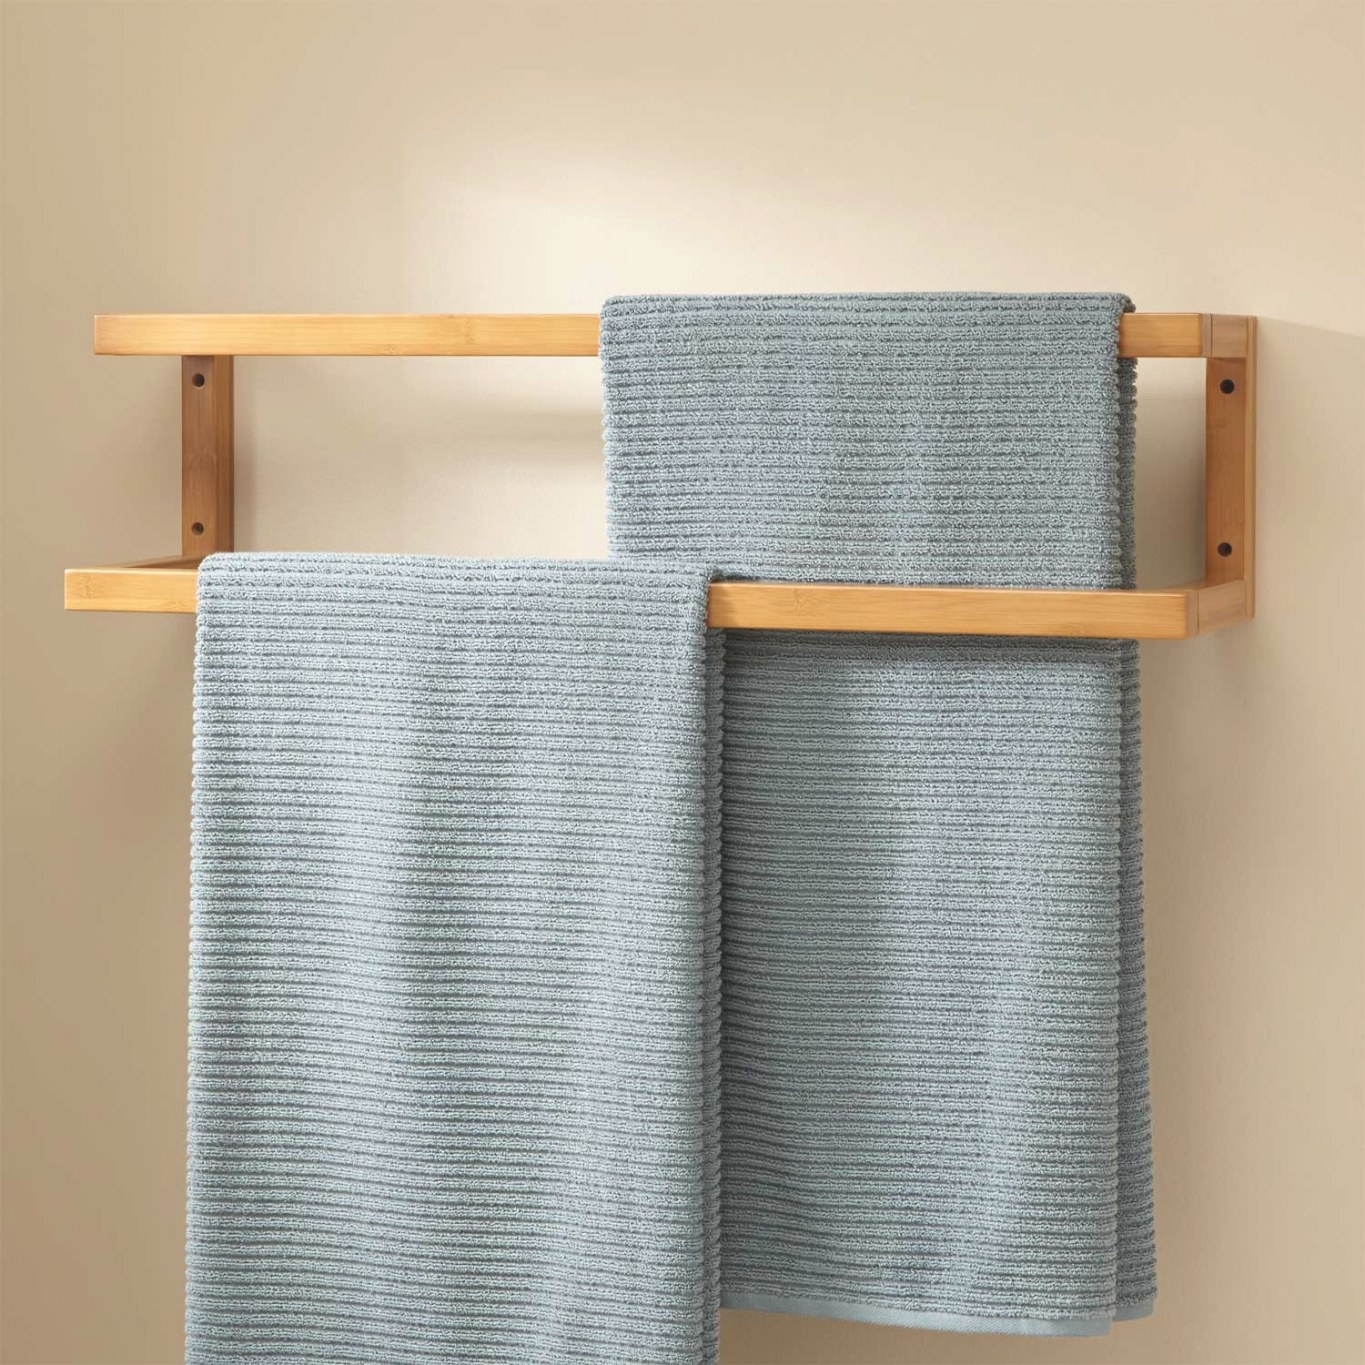 Salvatore Bamboo Mounted Towel Rack - Bathroom for Towel Racks For Small Bathrooms